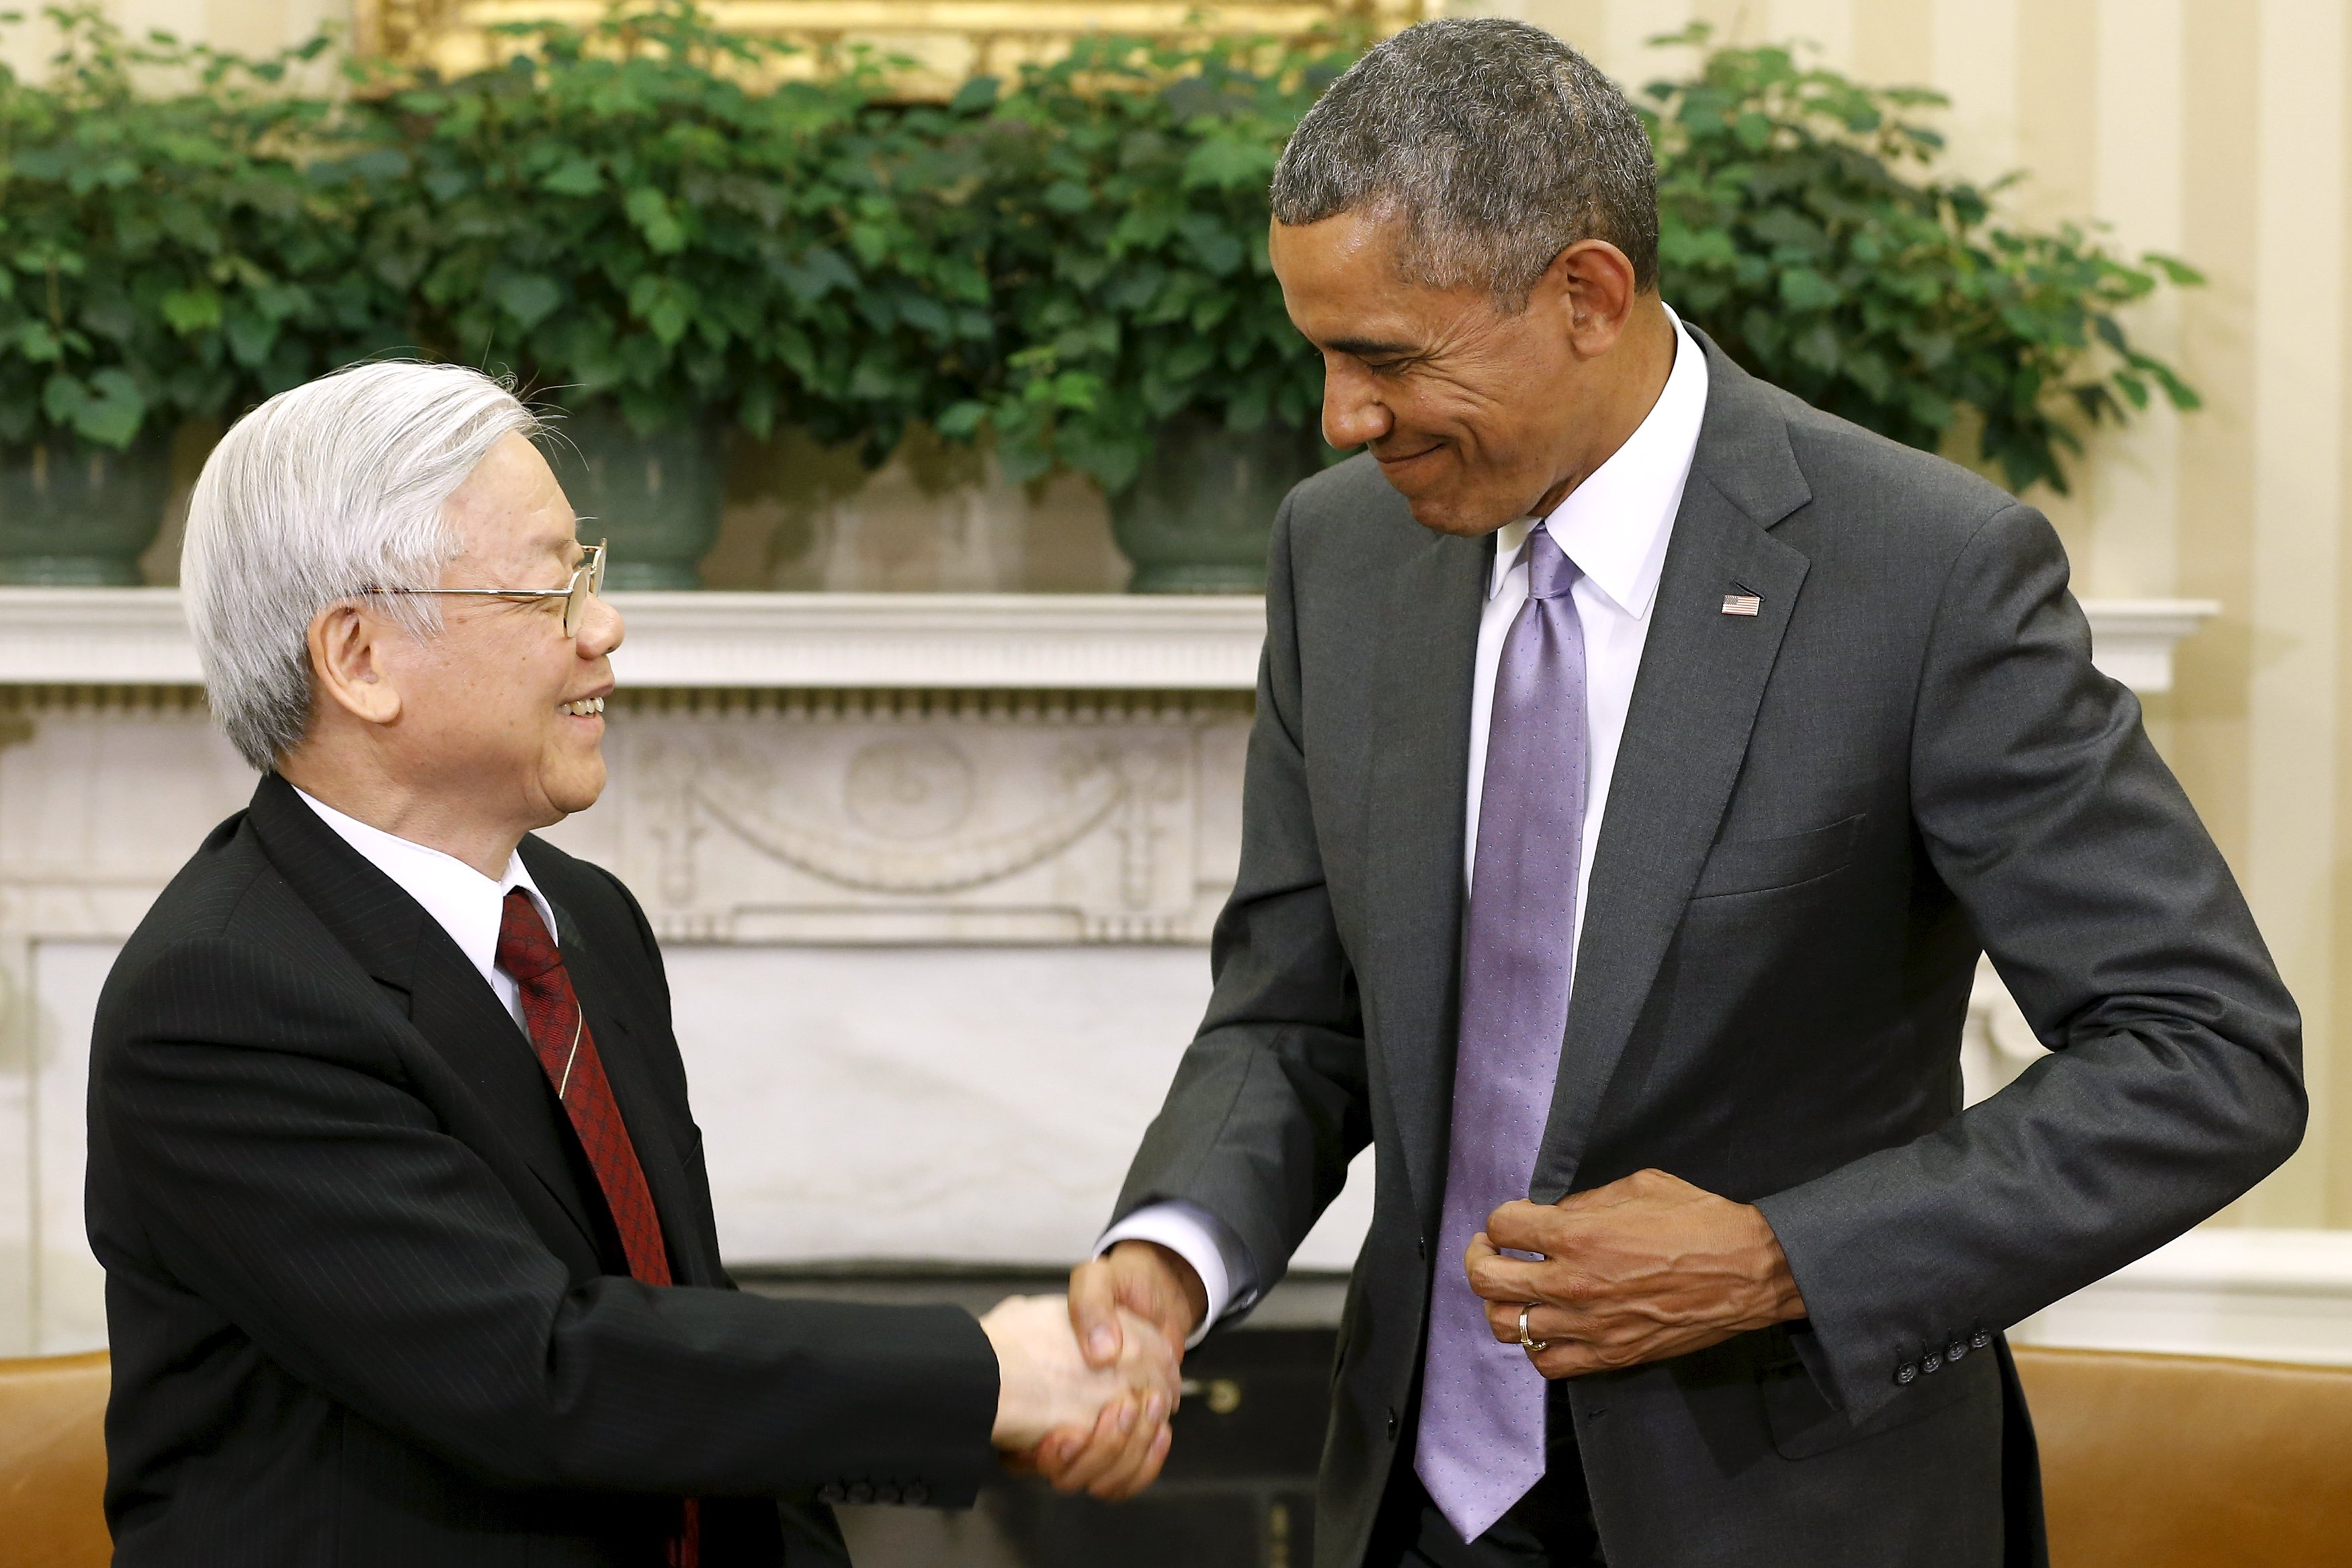 New era in relations as Obama administration considers Vietnam key partner: scholars